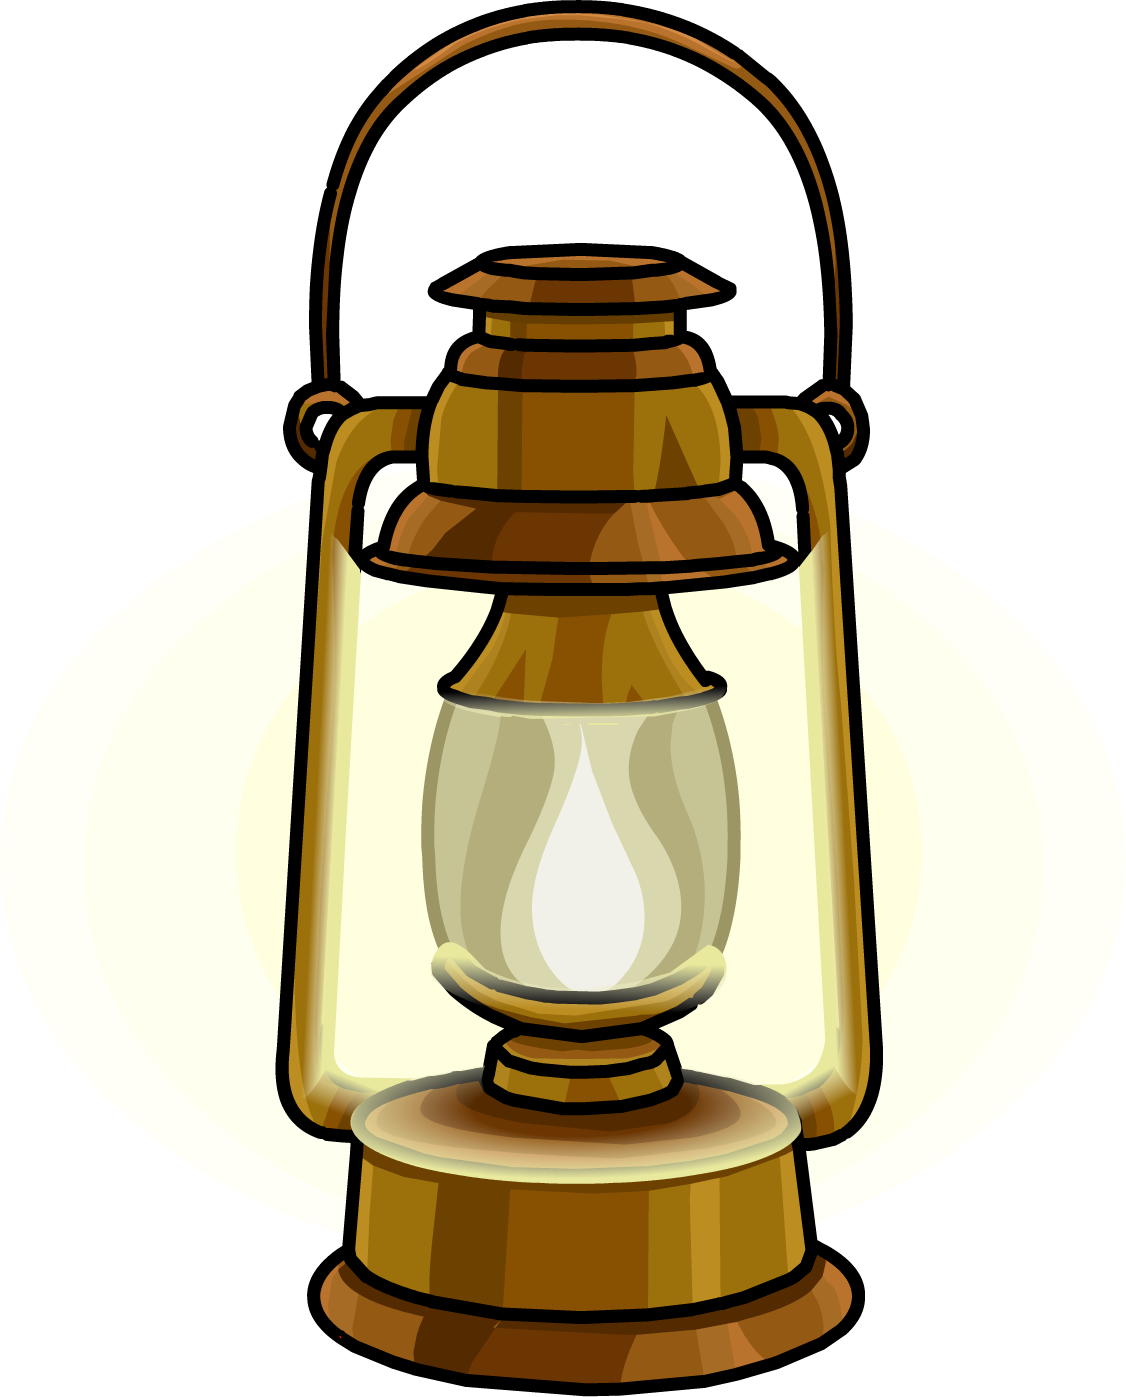 Storm Lantern Club Penguin Wiki Fandom Powered By Wikia